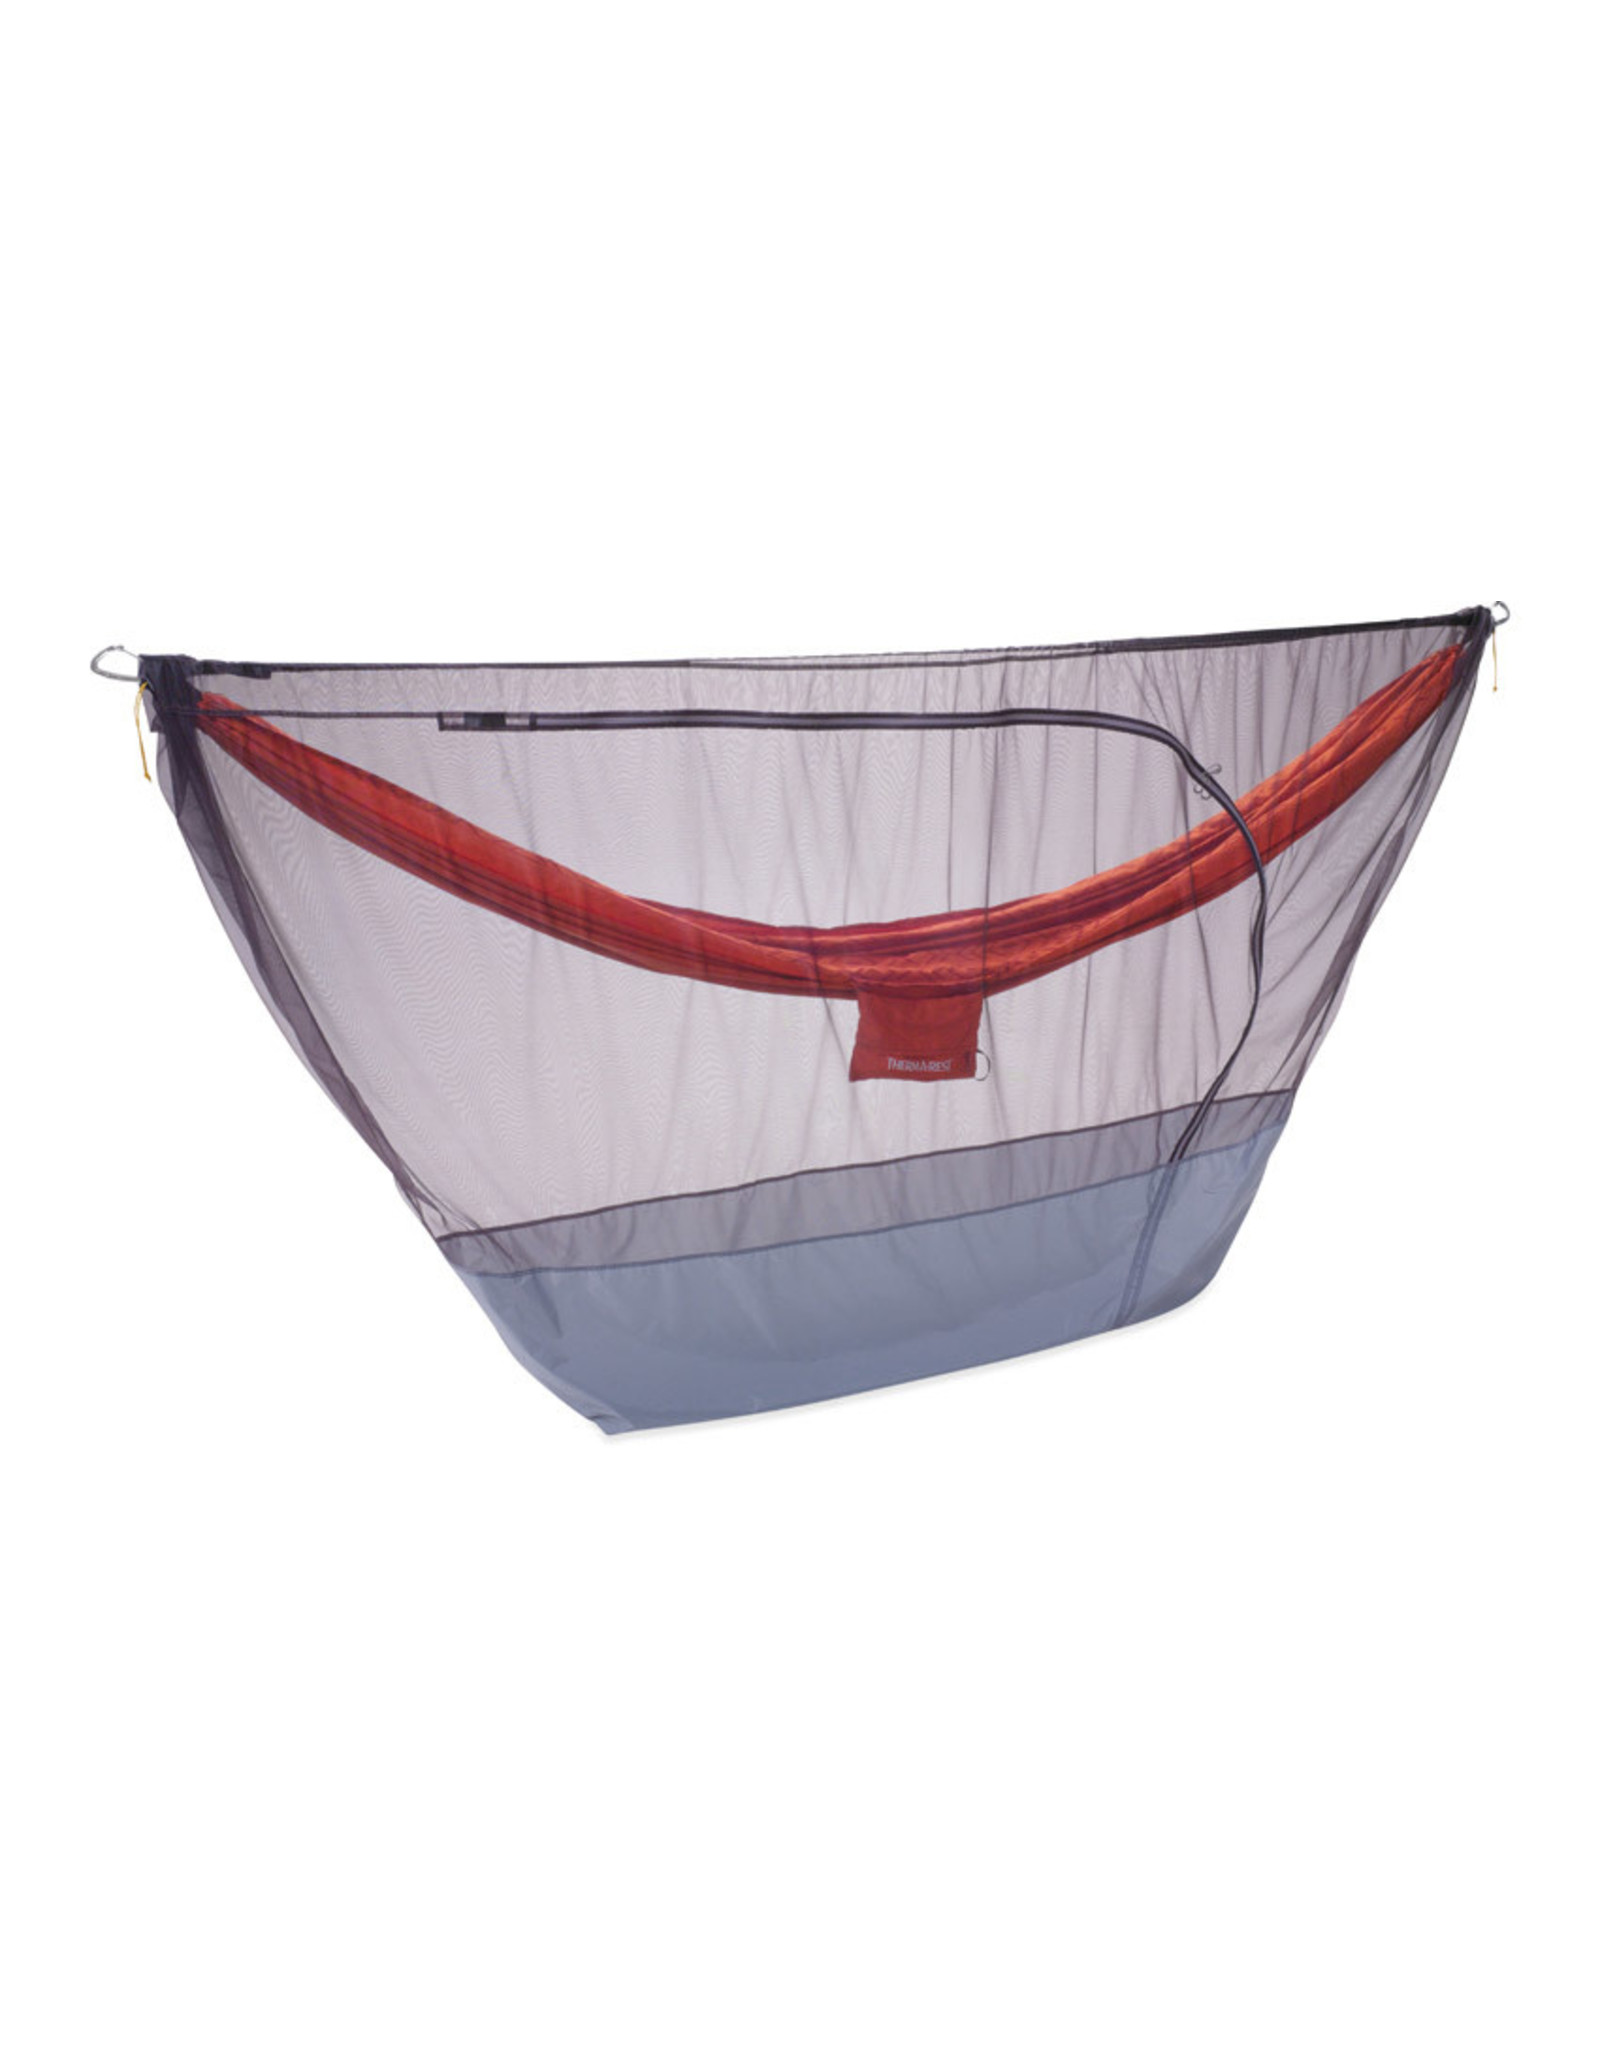 Therm-a-Rest Therm-a-Rest Hammock Bug Shelter S19